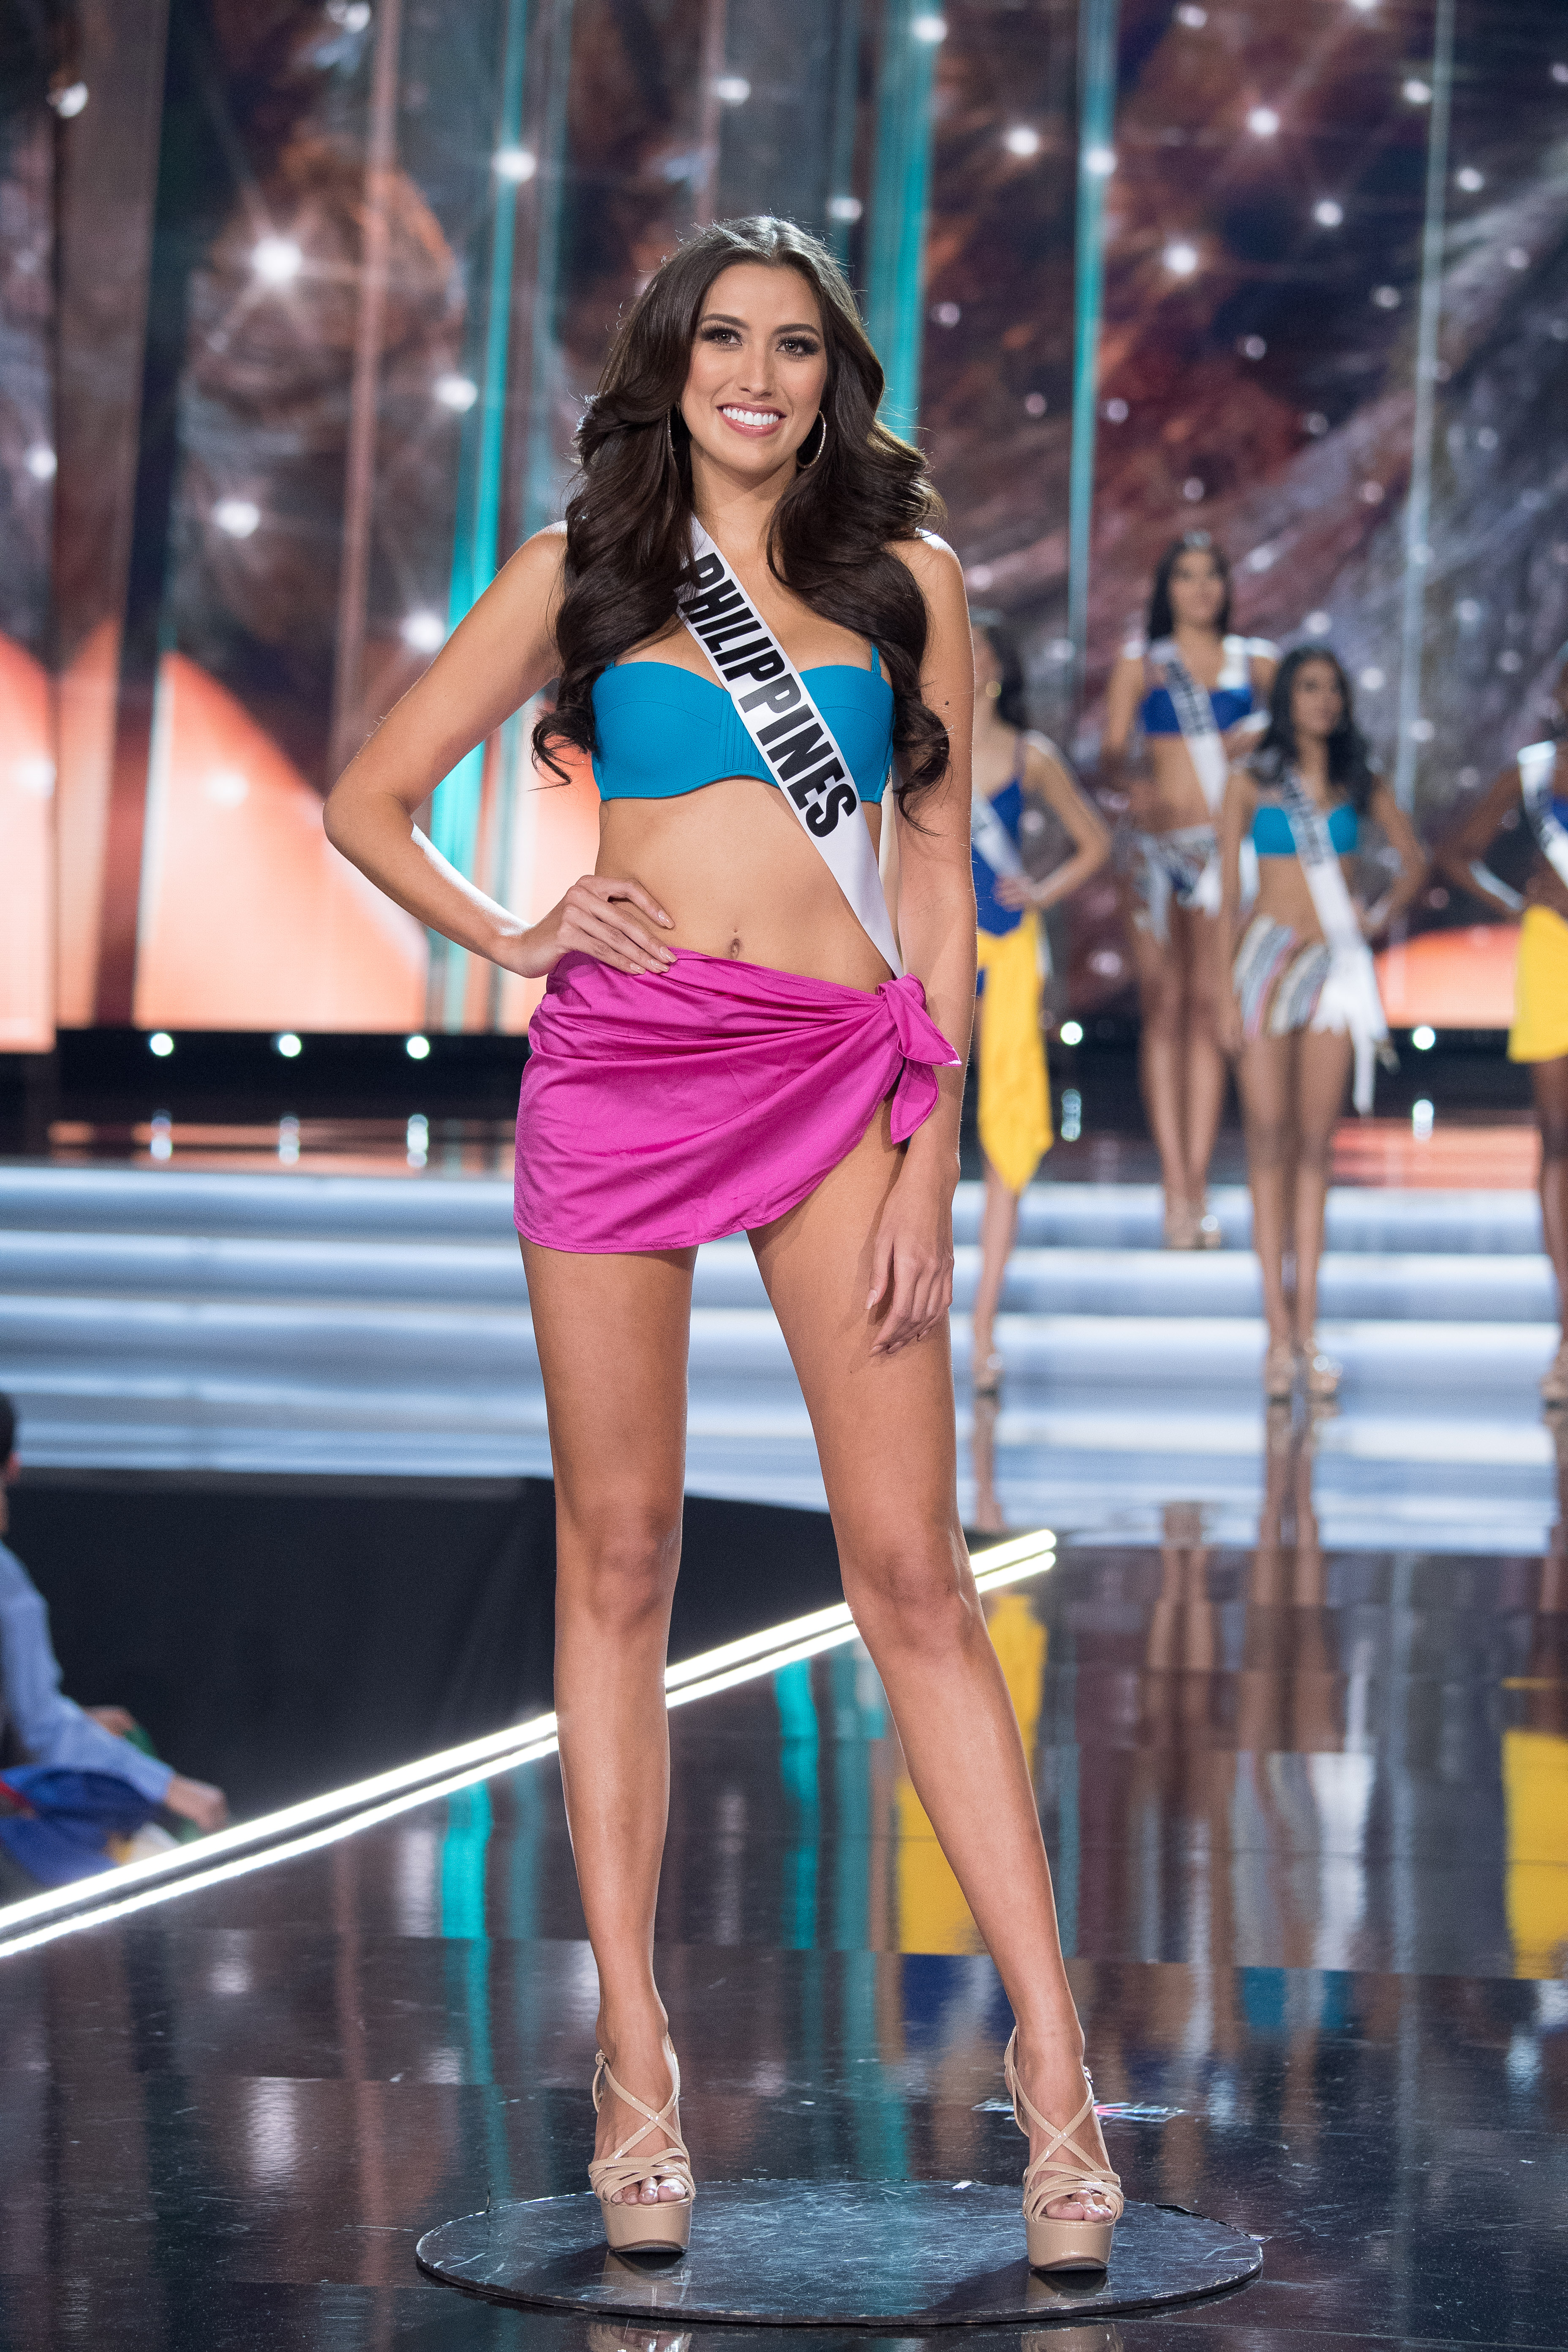 Rachel Peters during the swimsuit round. Phot from Miss Universe Organization